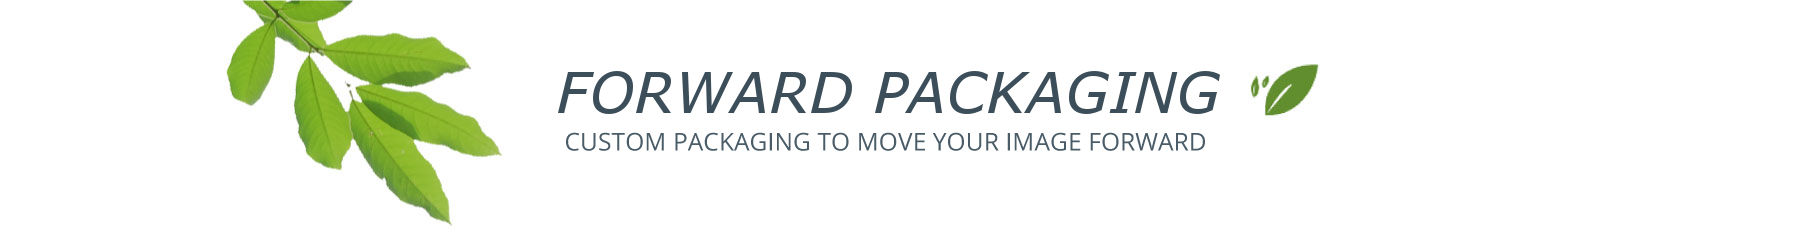 Forward Packaging - Eco Friendly